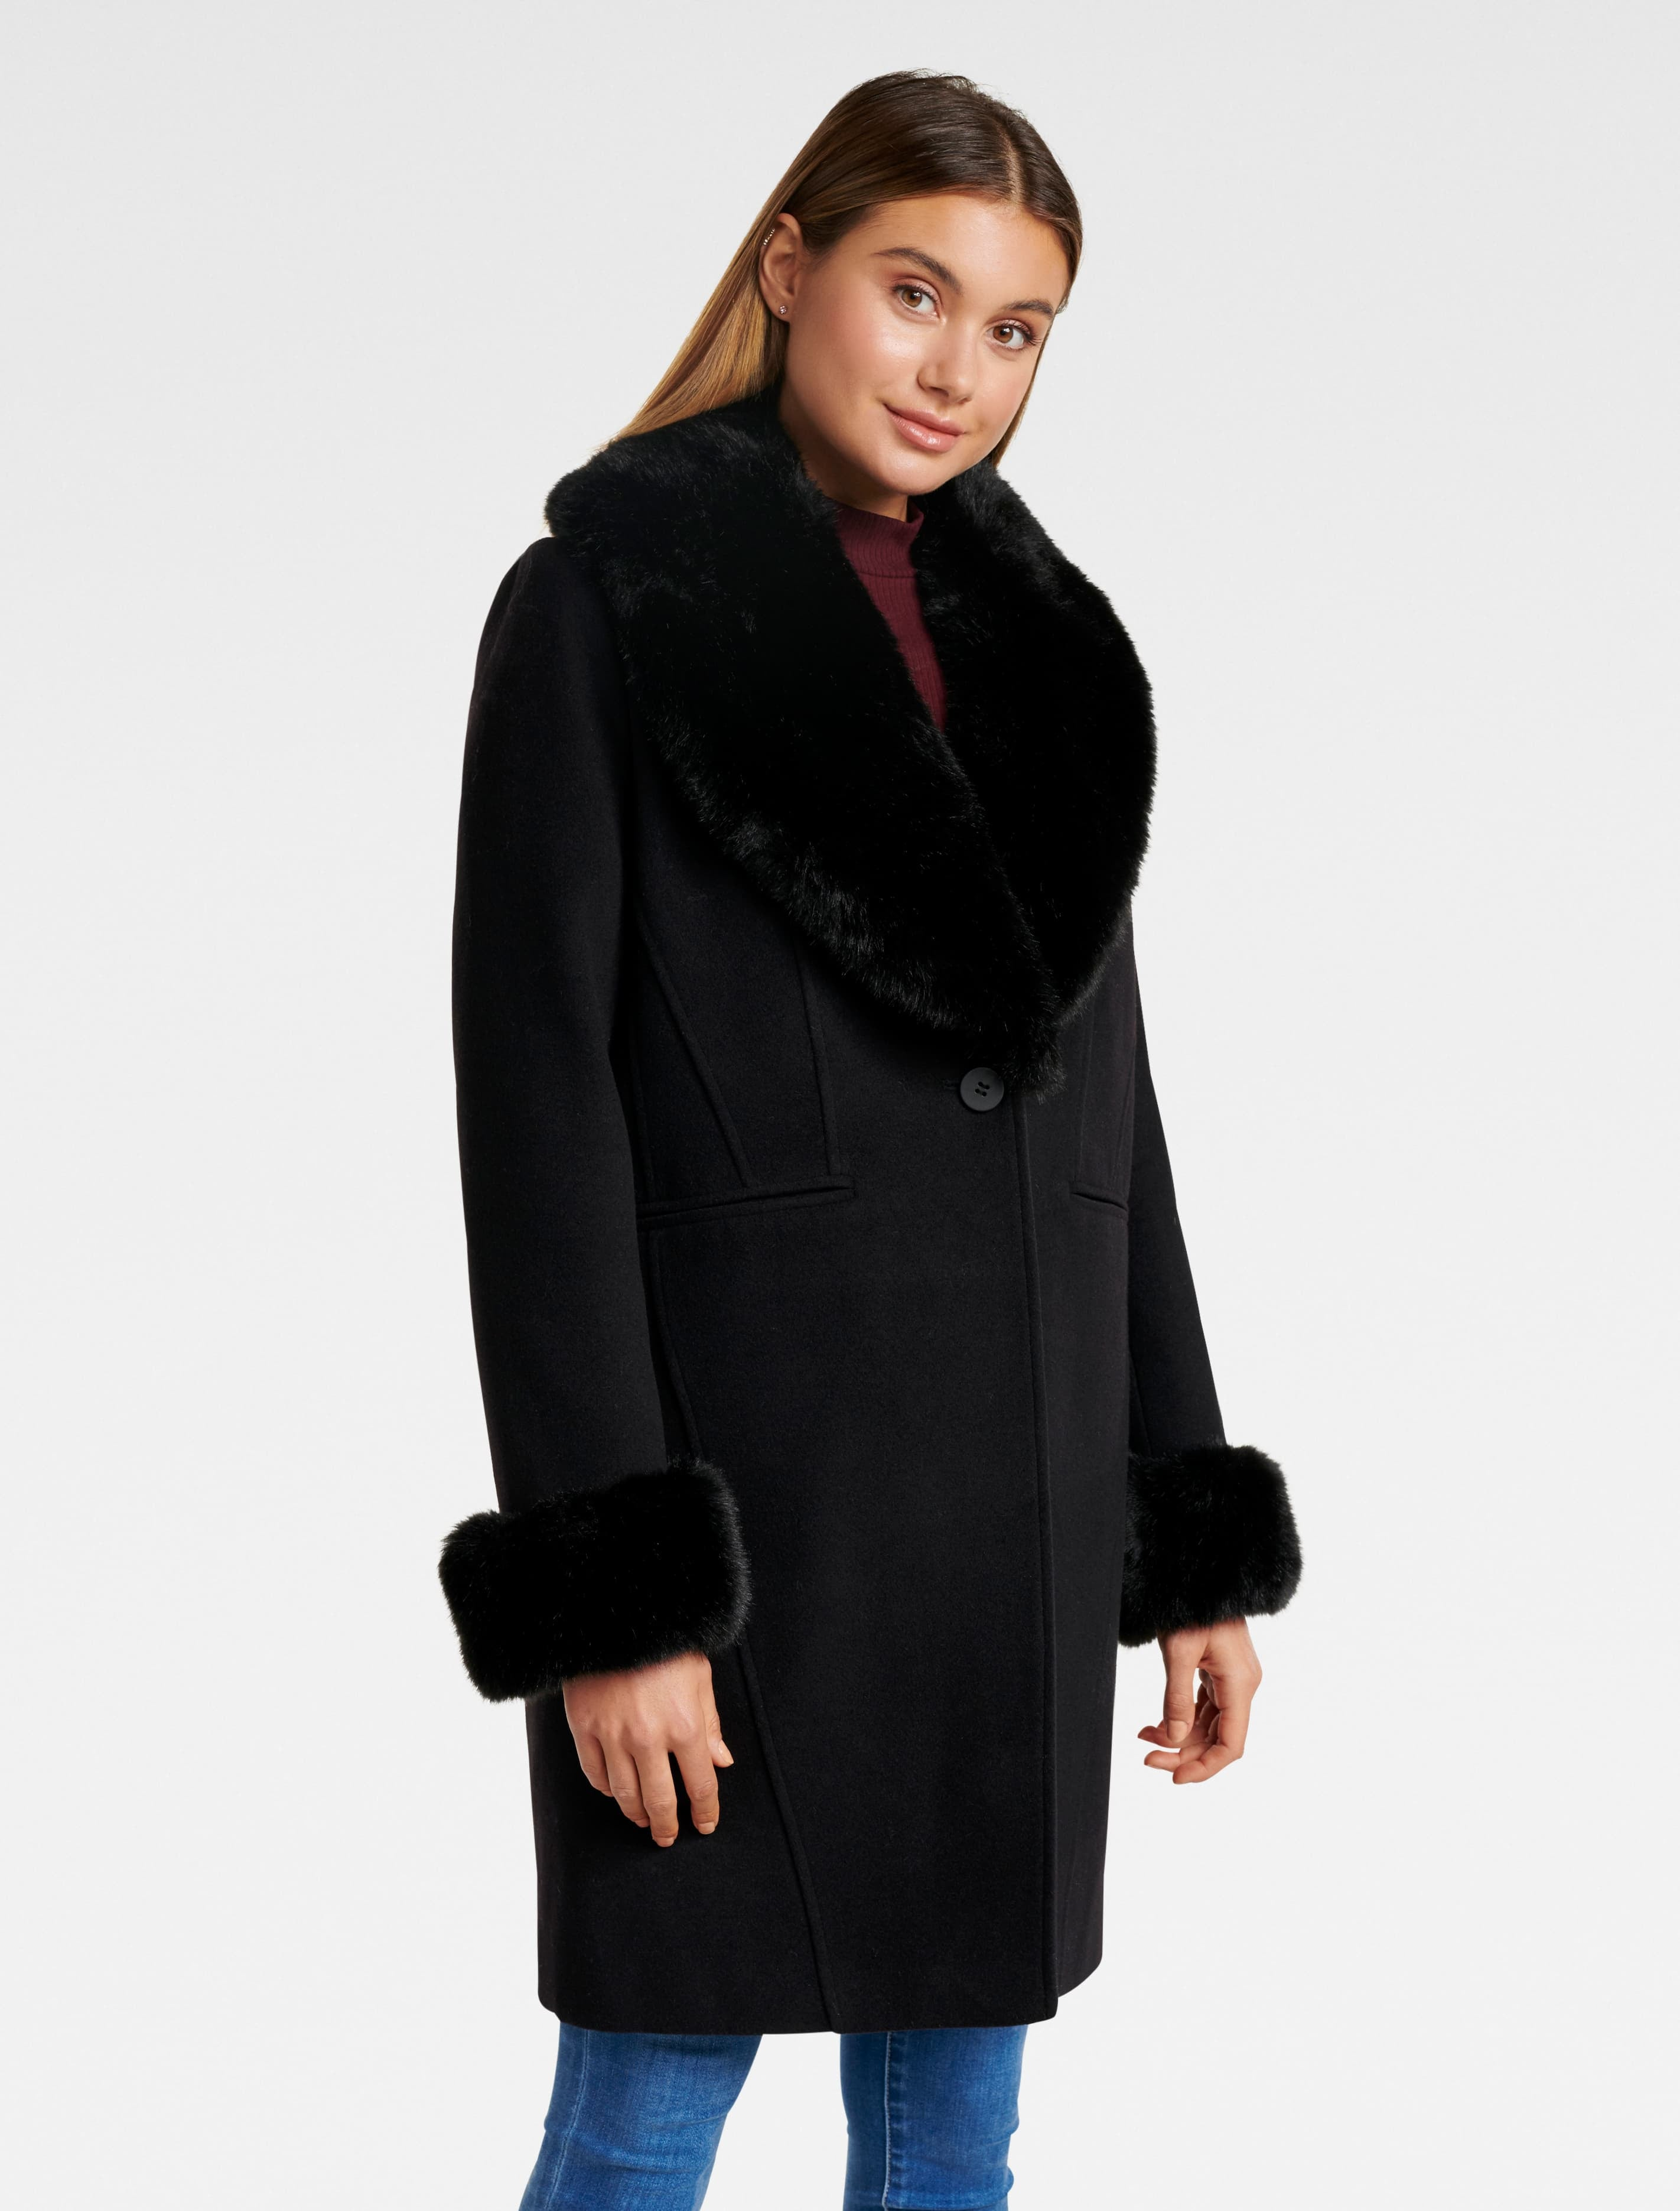 Vintage Coats & Jackets | Retro Coats and Jackets Aurora Fur Cuff Crombie Coat - Black - 12 $149.99 AT vintagedancer.com